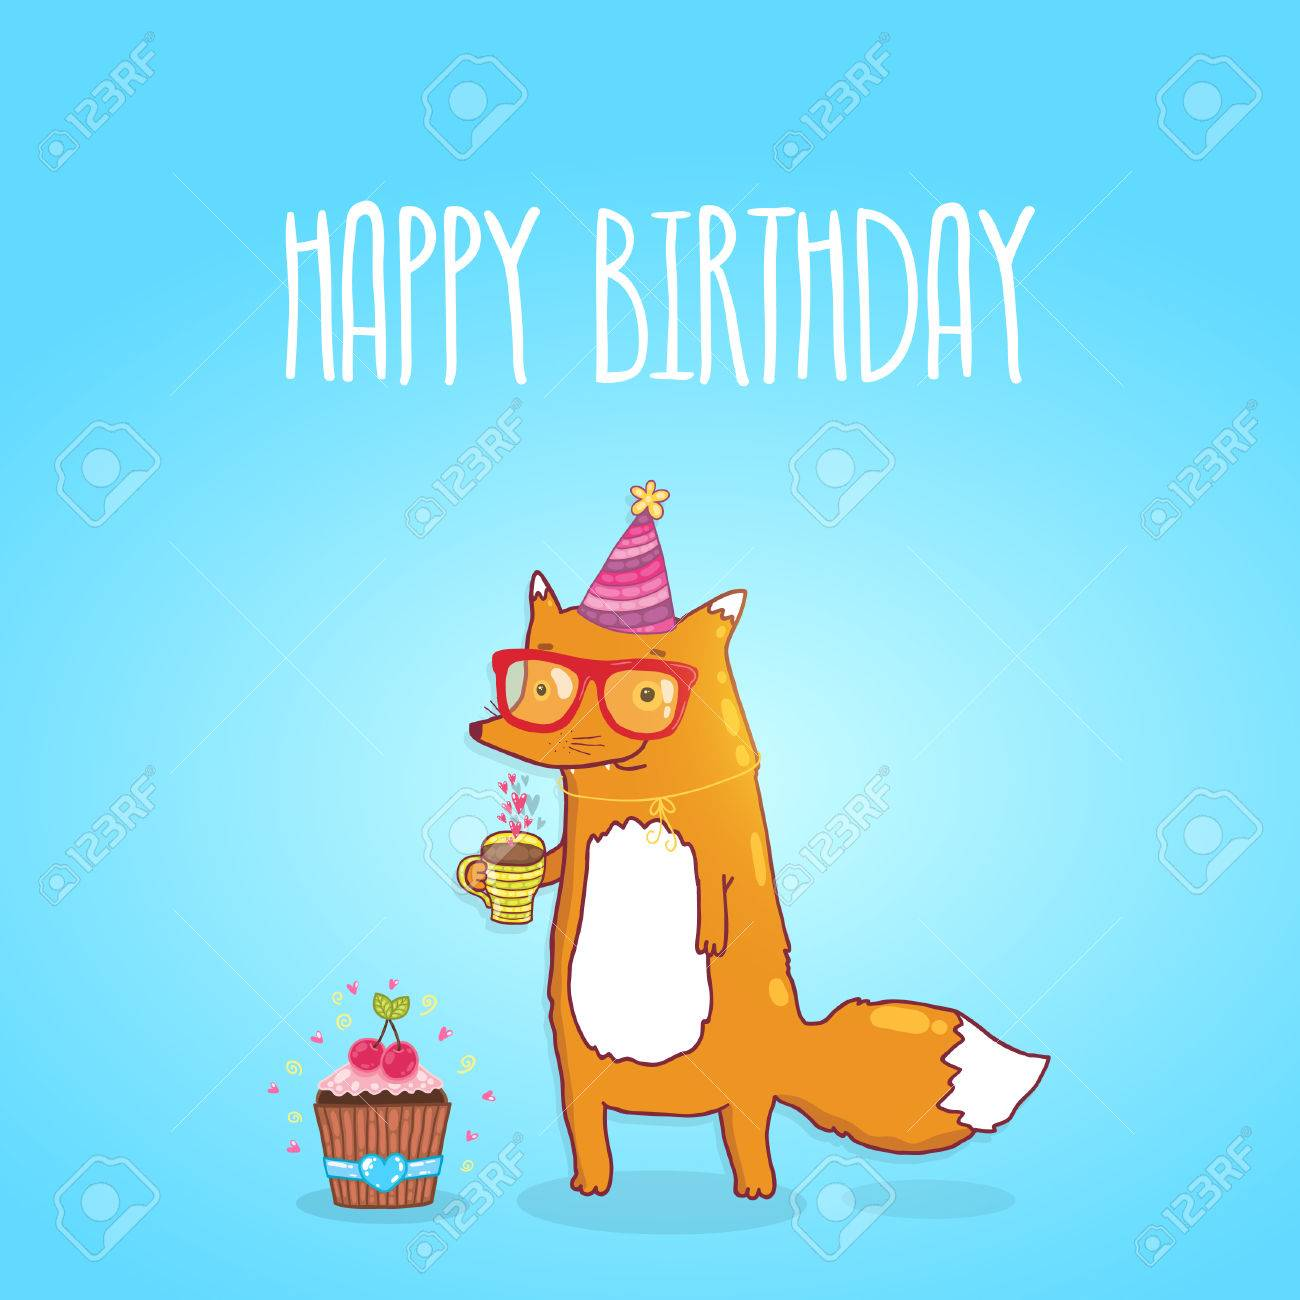 happy birthday card background cute cartoon hipster fox happy birthday card background cute cartoon hipster fox holiday party template greeting postcard